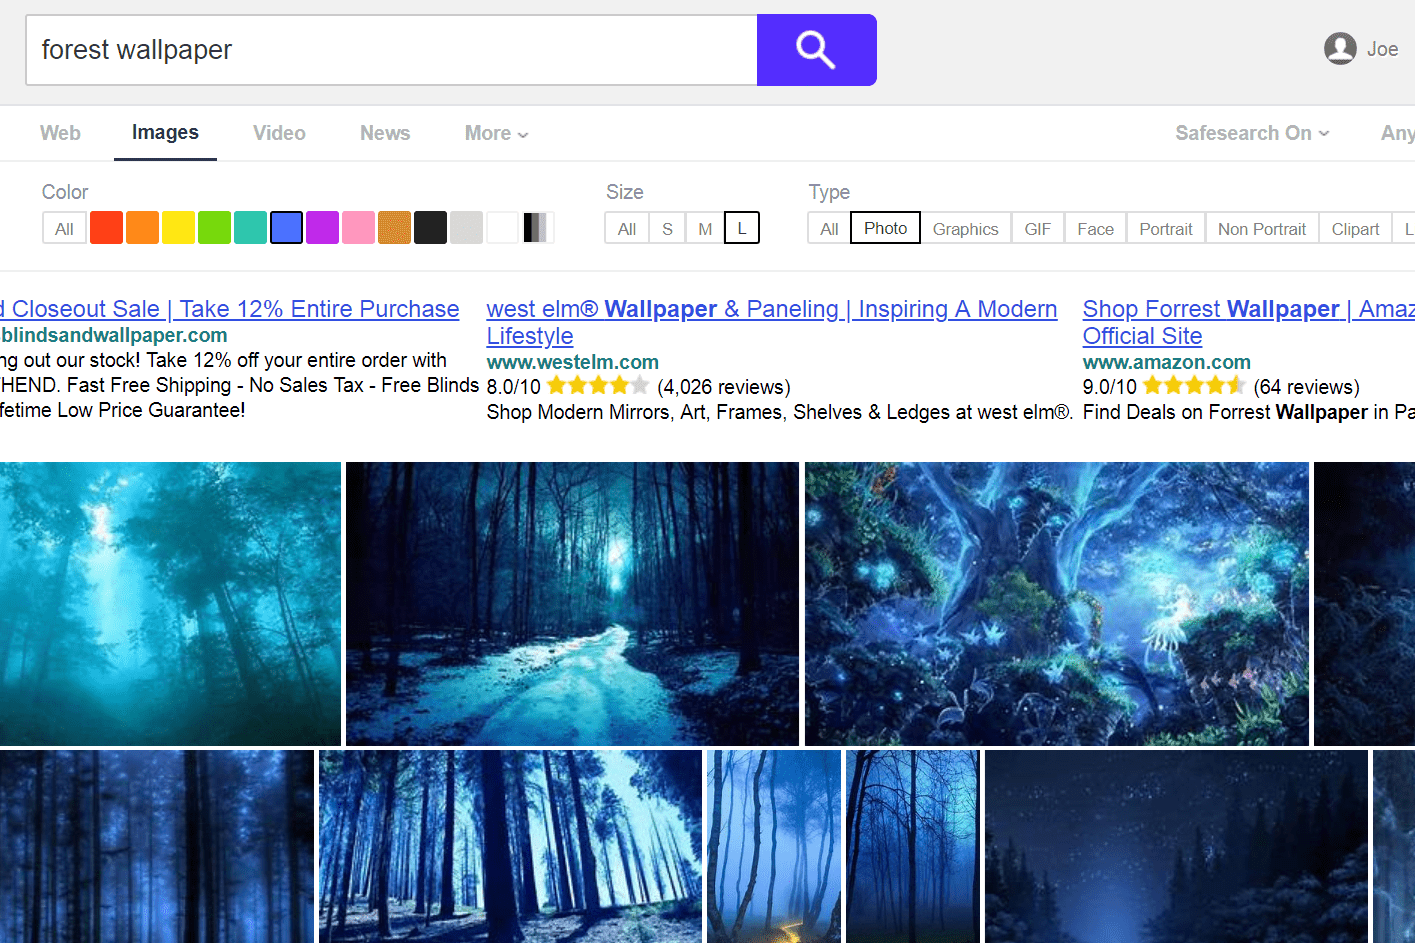 Yahoo search for forest wallpaper